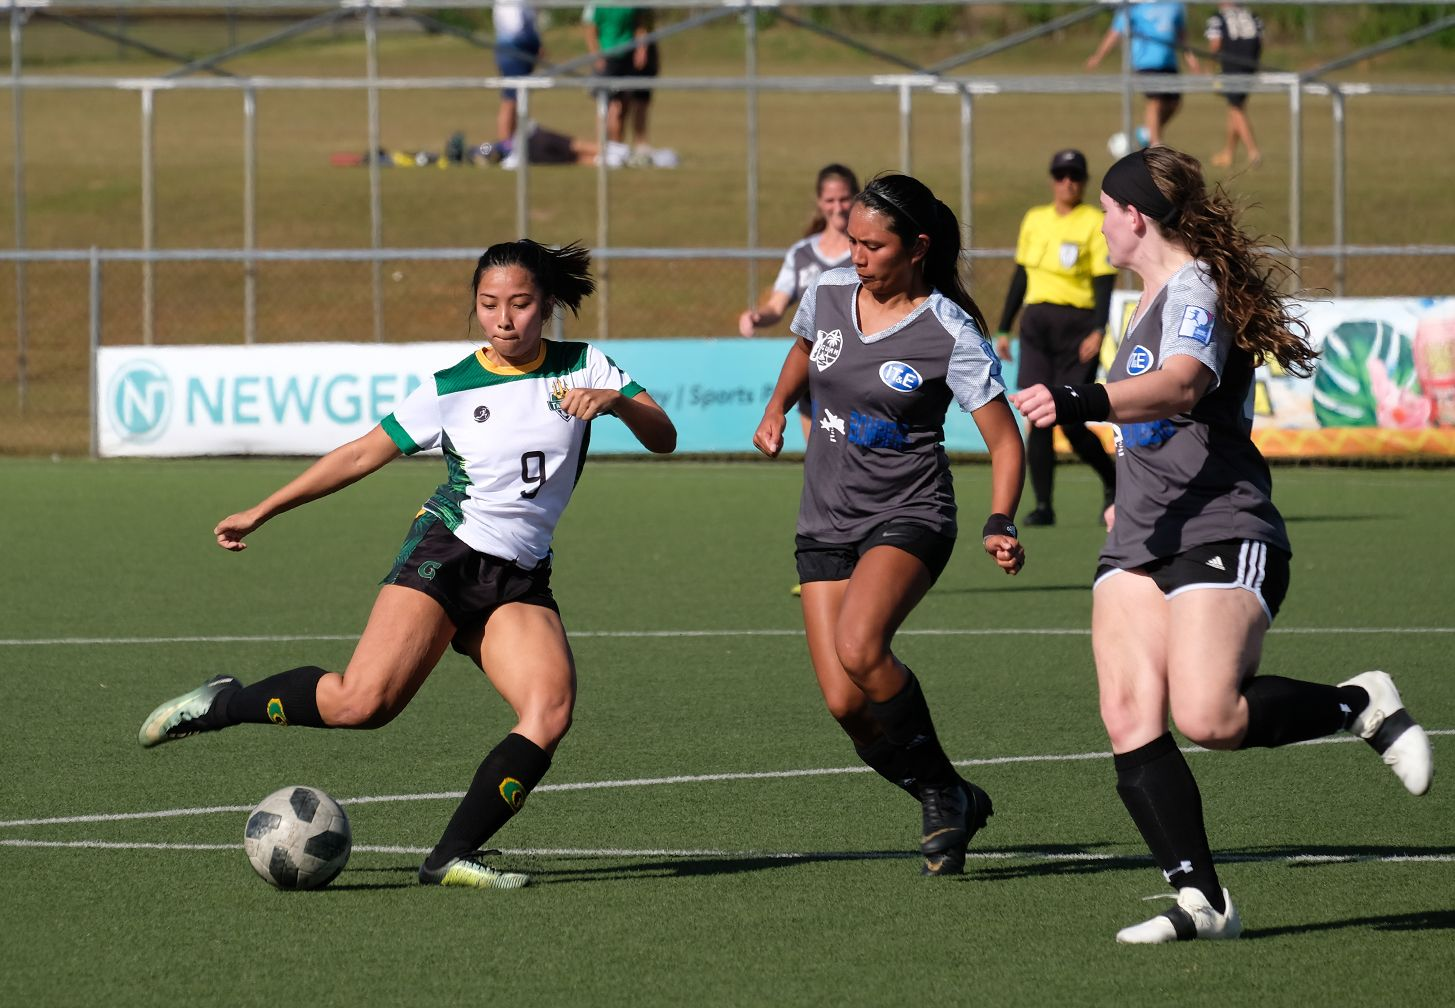 UOG's Ariya Cruz, No. 9, moves the ball upfield against two opponents. Cruz scored two of UOG's six goals in the March 10 match.